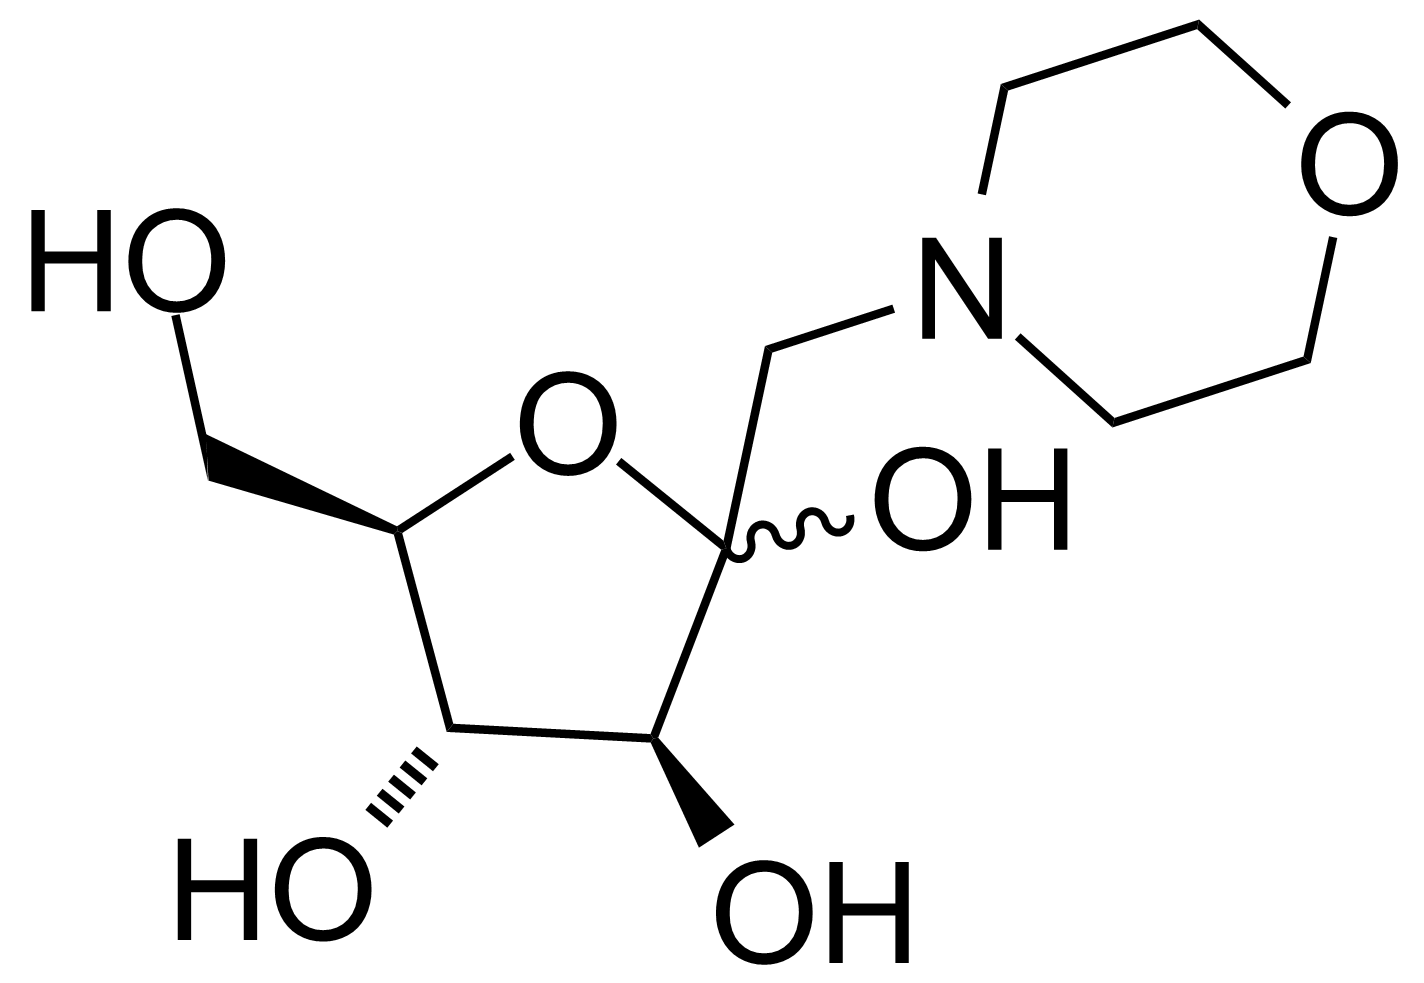 Structure of 1-Deoxy-1-morpholino-D-fructose